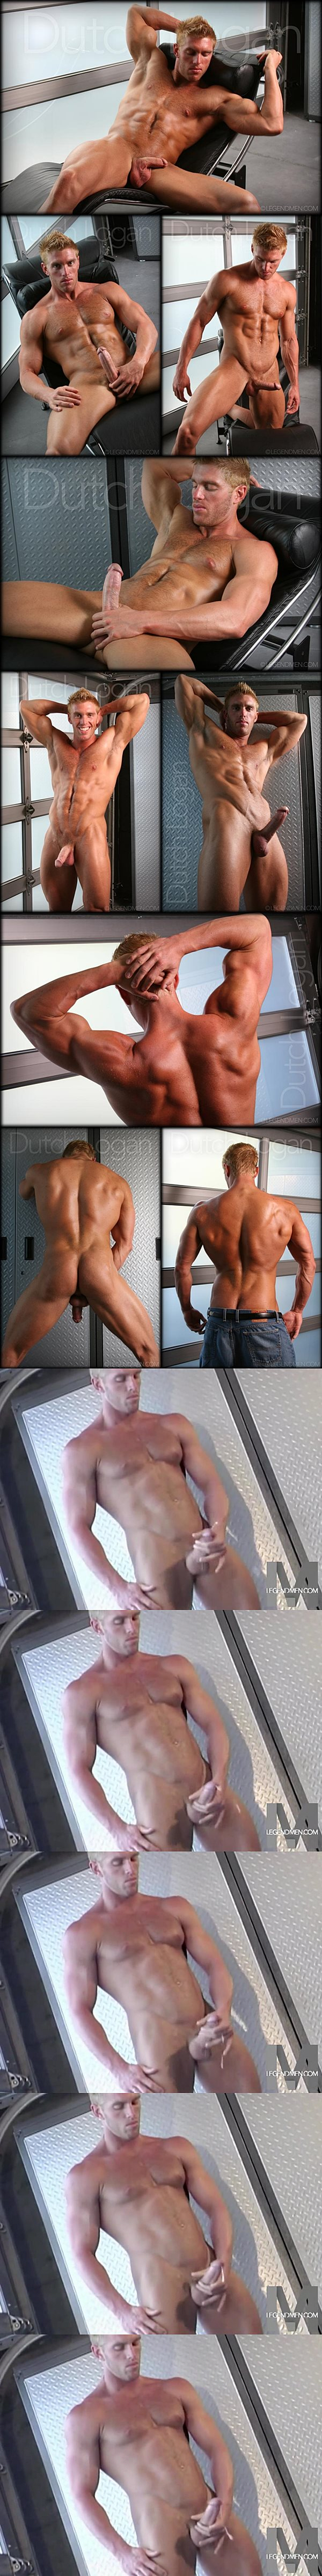 Hot blond musle hunk Dutch Logan shoots his big load at Legendmen